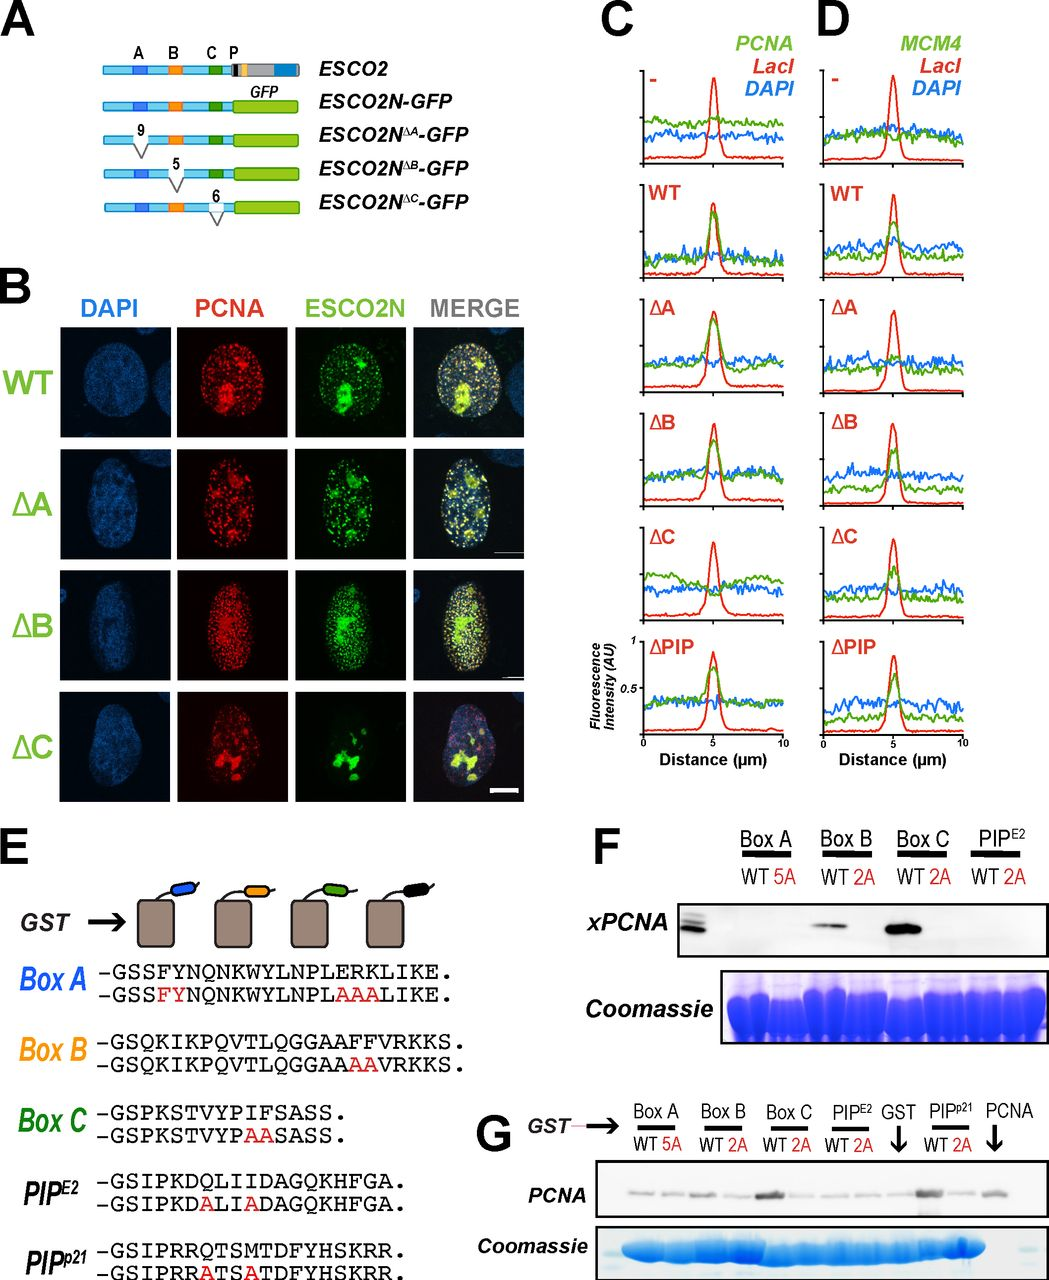 PCNA interacts with ESCO2 motifs in vivo and in vitro . A. ESCO2N-GFP fusions . A cartoon depicting constructs in which the N terminal 375 a.a. of ESCO2 are fused directly to eGFP. Motifs A, B, and C were deleted independently, as shown; numbers indicate the number of amino acids deleted (not drawn to scale). B. Localization to replication foci . Confocal images of U2OS cells co-transfected with Ruby-PCNA and the GFP-fusion constructs. Colocalization is indicated in yellow in the merge image, as in Figure 2 . C. Box C is critical for PCNA recruitment by tethered ESCO2 . mCherry-lacI-ESCO2 (full-length) fusions with the deletions indicated in panel A were co-expressed with GFP-tagged PCNA as in Figure 2 , and the colocalization at nuclear foci was scored by fluorescence intensity profile analysis as in Figure 2 . D. MCM4 recruitment to tethered ESCO2 is dependent upon Box A . The experiment in Panel C was repeated, only in this case the ESCO2 constructs were co-expressed with mEmerald-MCM4. Recruitment to tethered ESCO2 was scored as in Figure 2 . E. Pull down assay using GST fusion proteins . Short peptide sequences including Box A, Box B, Box C, or the ESCO2 PIP box motifs were expressed as GST-fusion proteins. A parallel set was made in which alanine substitutions were made at the invariant amino acids (shown in red). The PIP-box from p21 was used as a positive control. F. Co-precipitation from cell free extracts . GST fusion proteins shown in panel A were mixed with Xenopus egg extract and incubated with glutathione sepharose beads. The beads were washed and bound proteins were eluted and probed for PCNA by immunoblot. A duplicate gel was stained with Coomassie dye to detect the GST fusion proteins. G. Co-precipitation of purified proteins . The indicated GST fusion proteins (panel E) were mixed with purified recombinant PCNA, pulled down with glutathione agarose beads and analyzed as in F for PCNA.